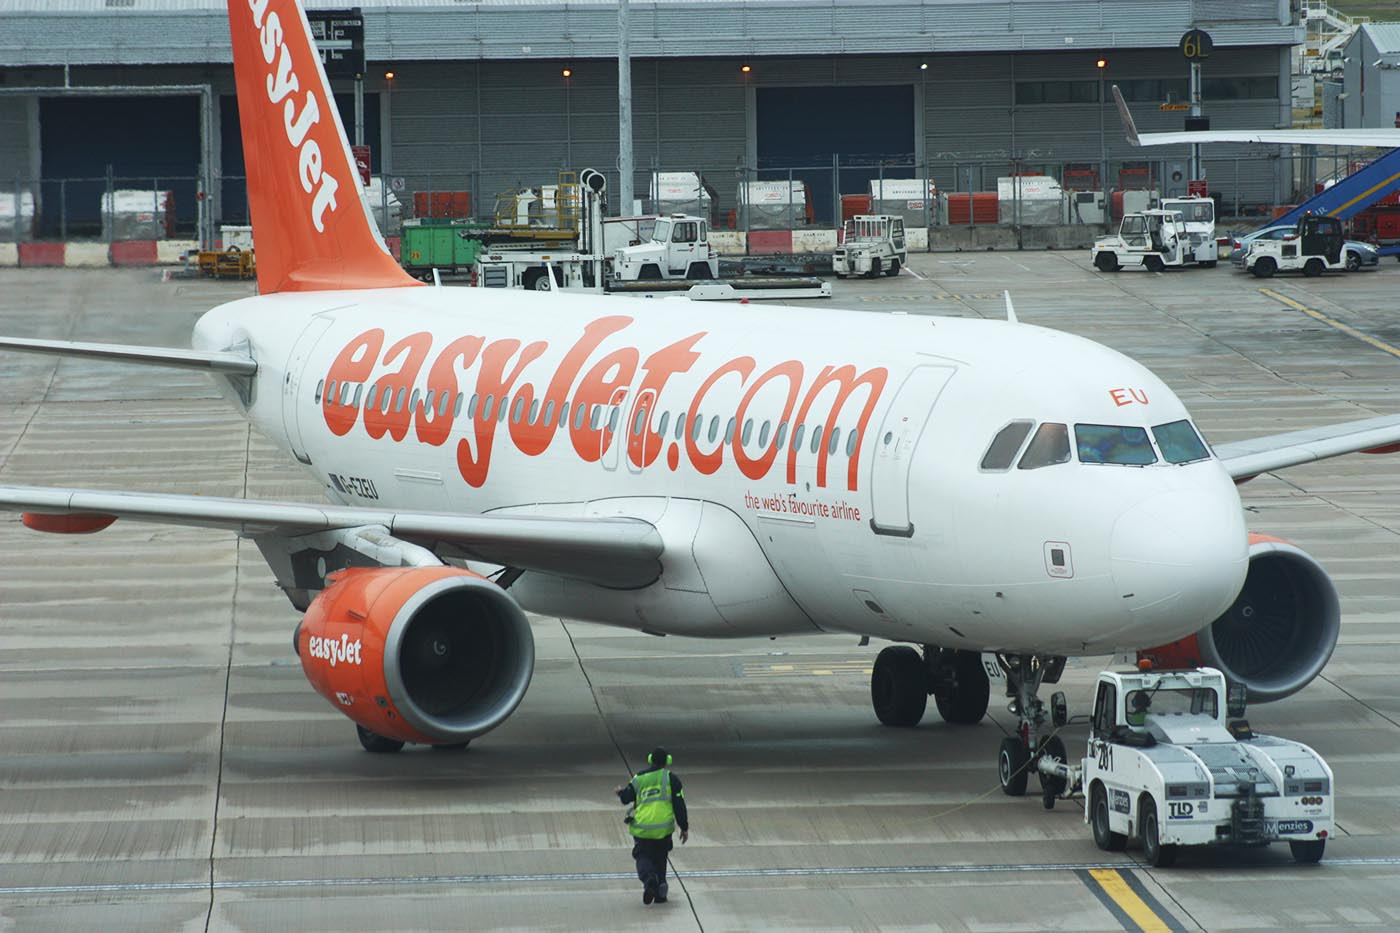 Breaking Easyjet To Close London Stansted Newcastle And Southend Bases Airlive